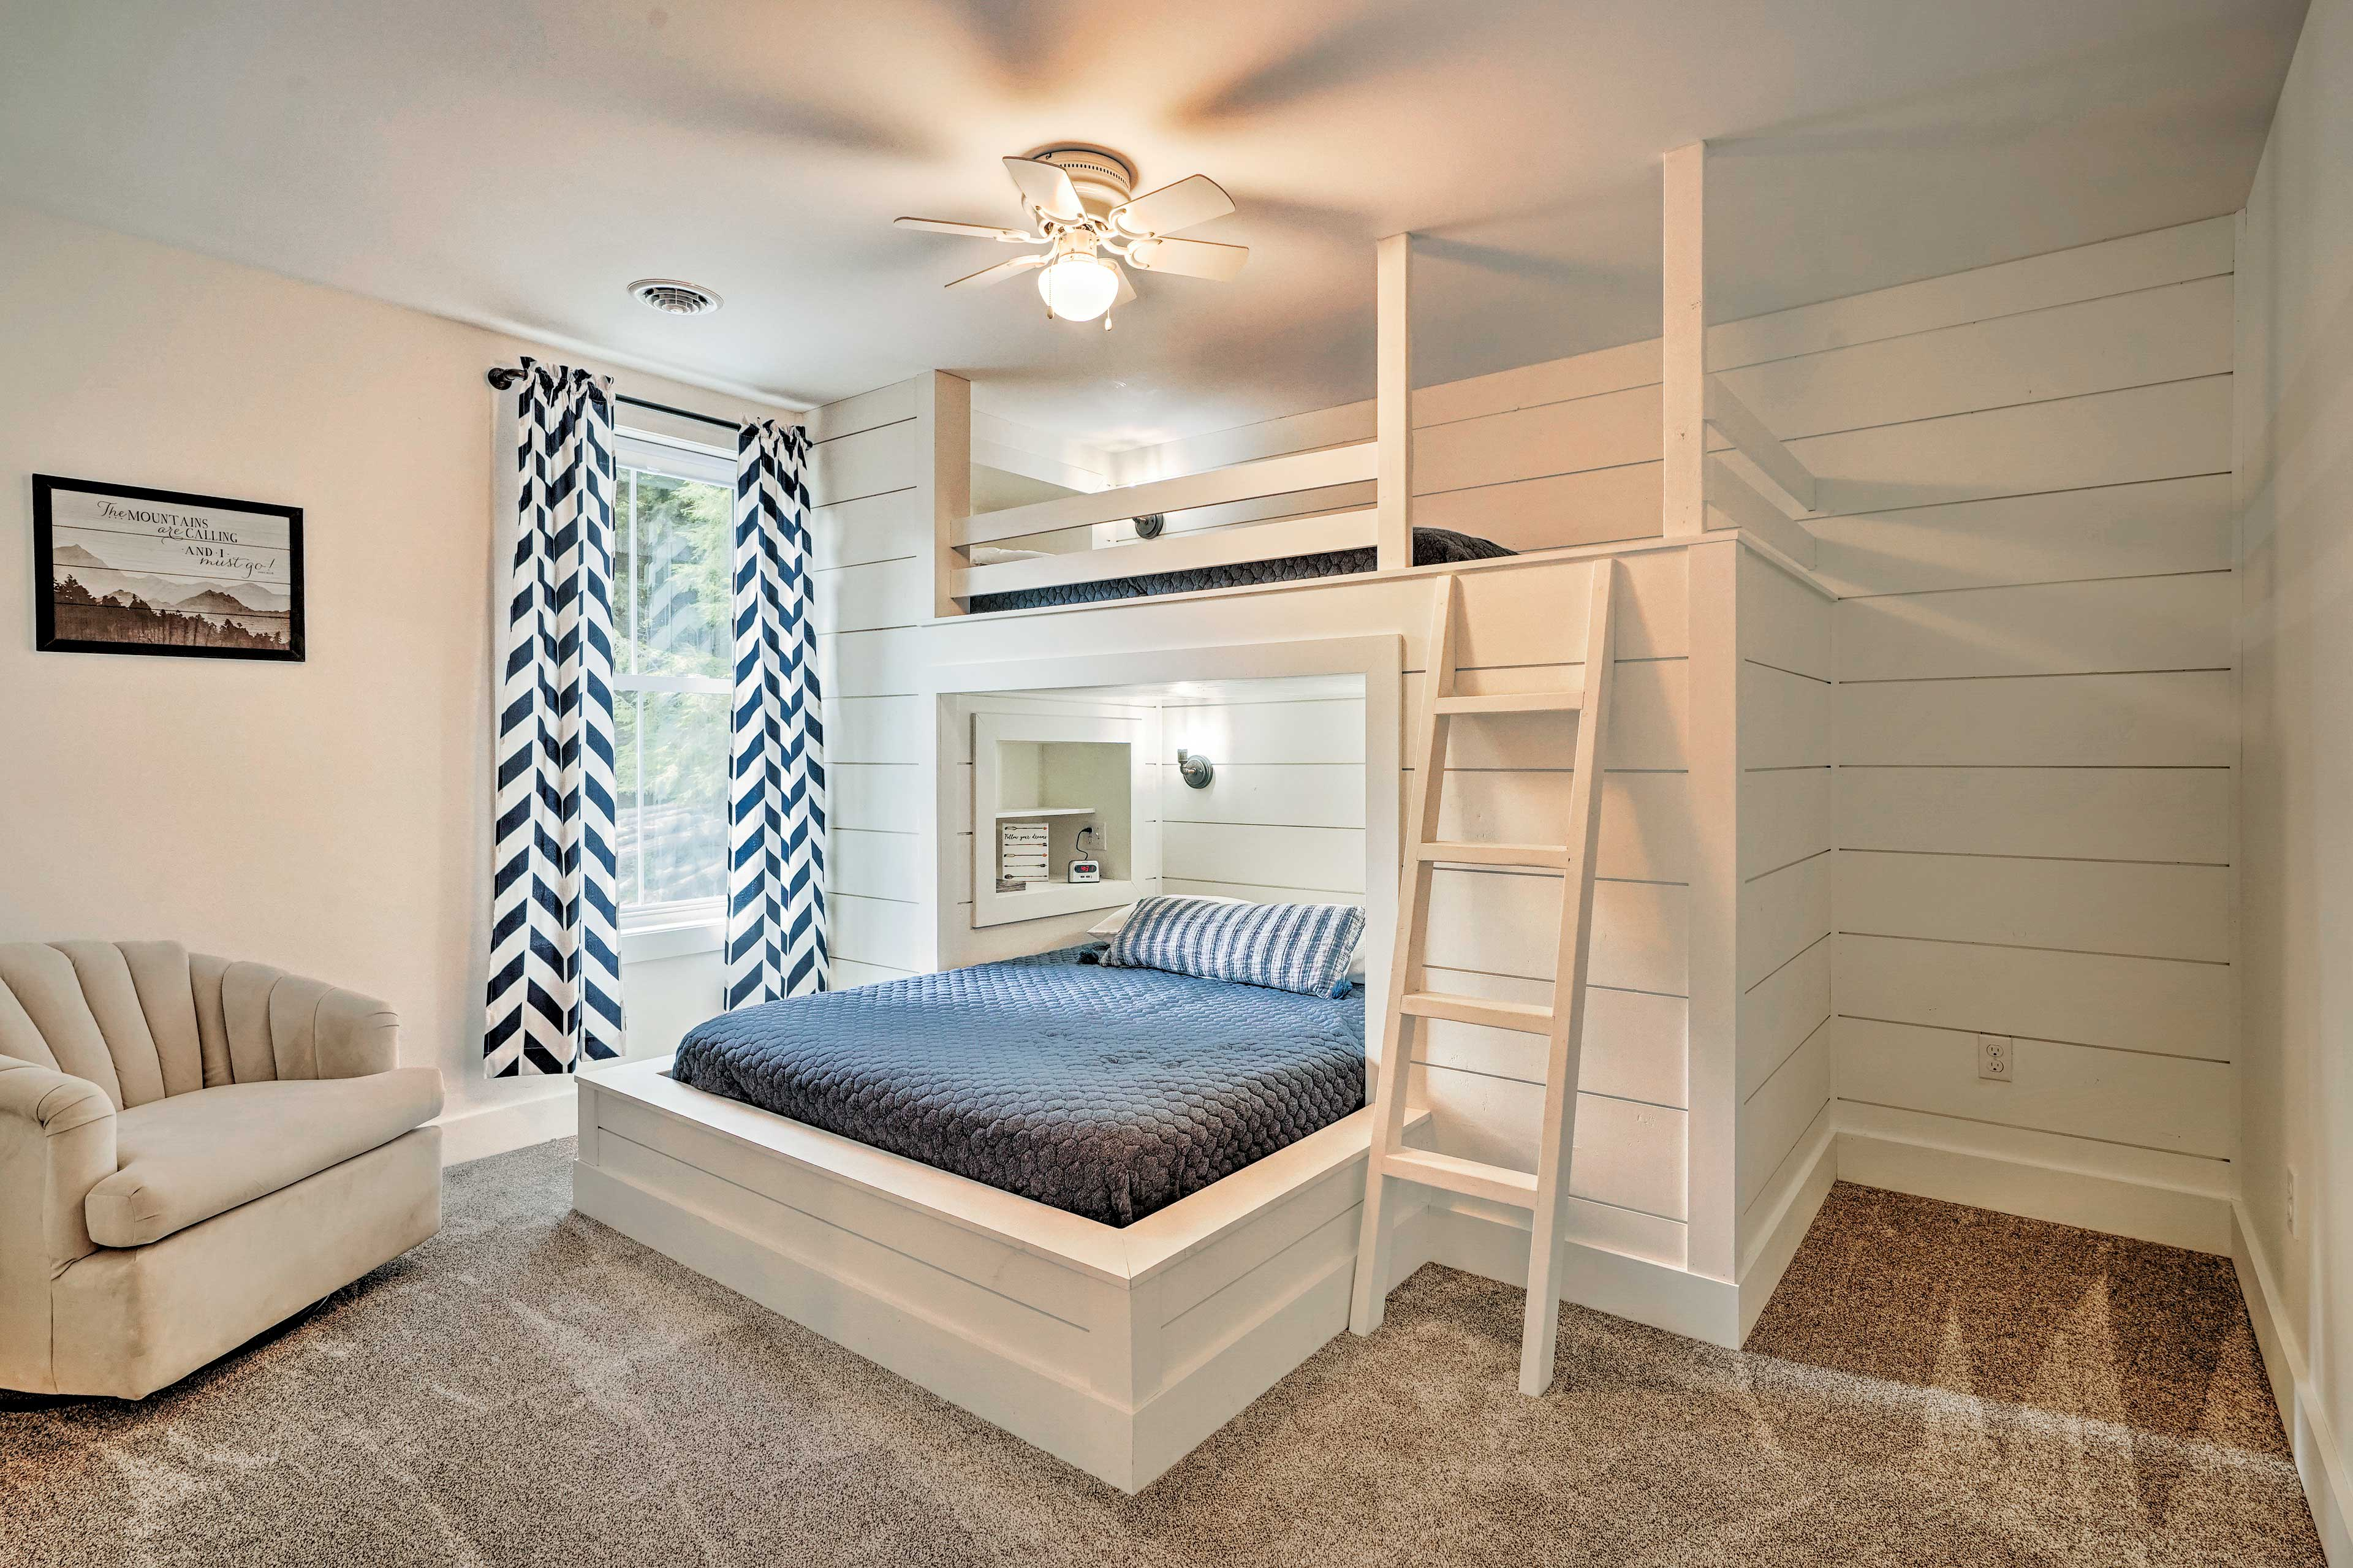 The fourth bedroom also offers a queen and twin-sized bed.